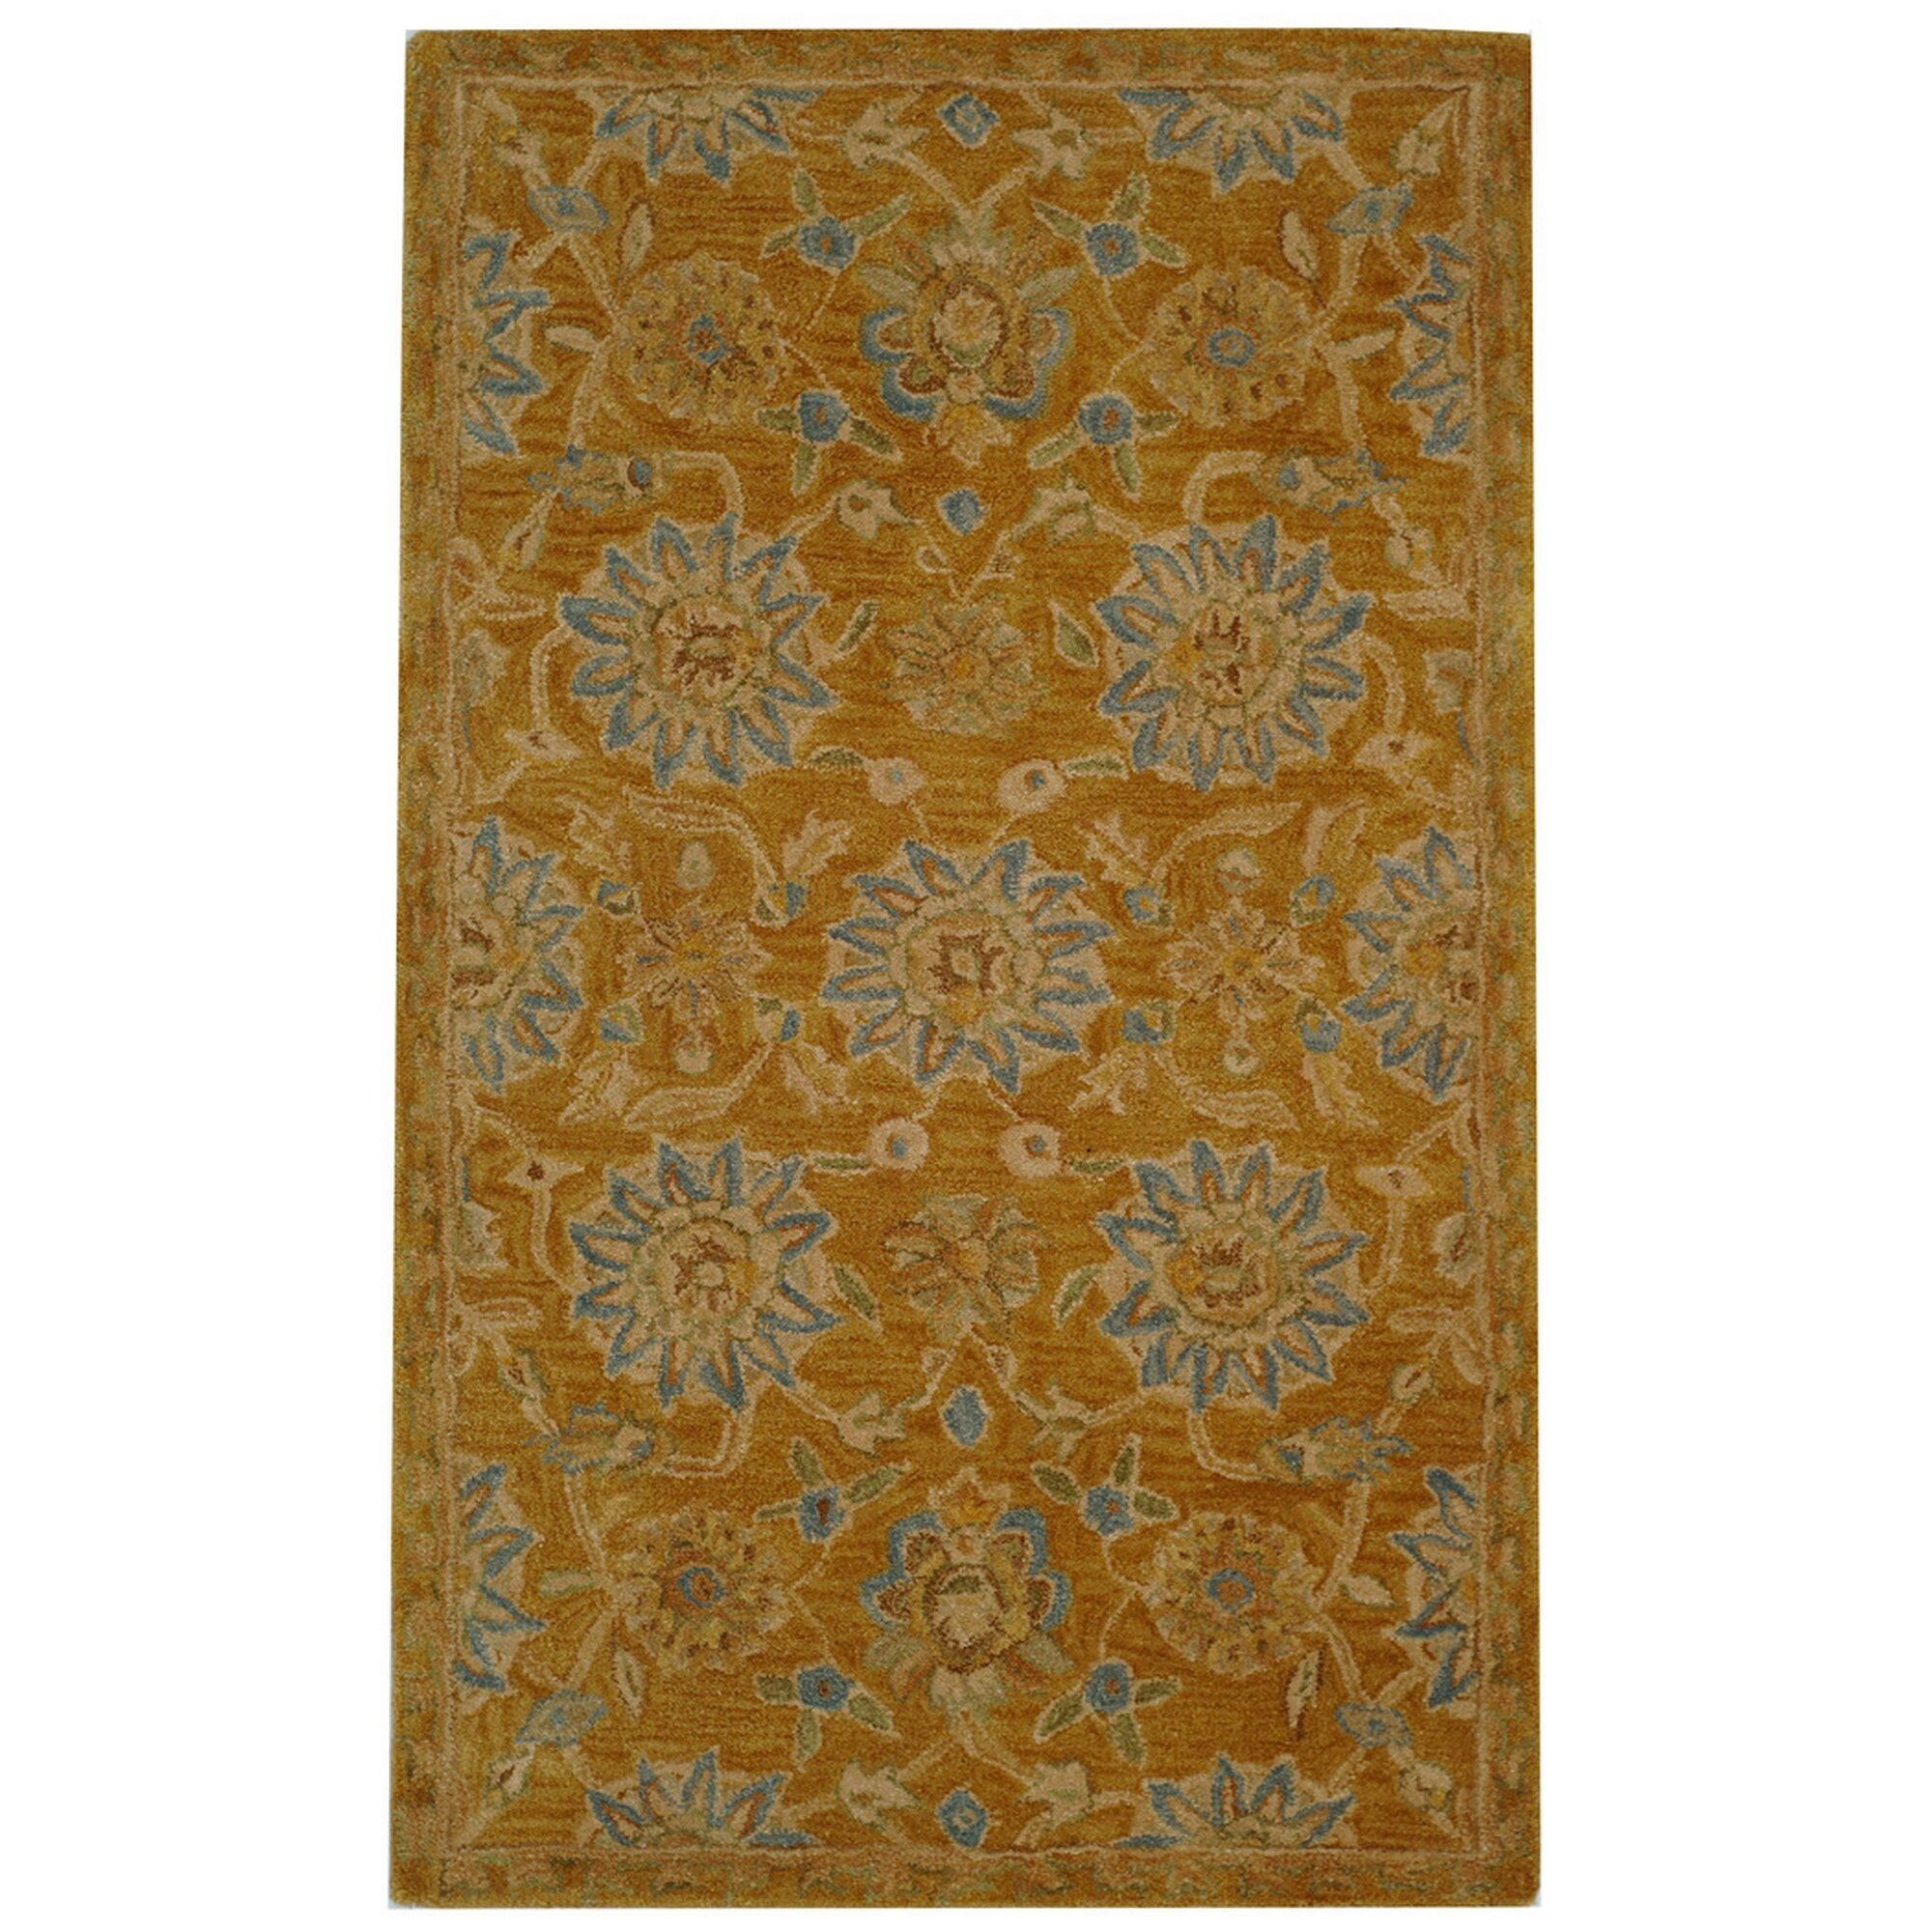 Safavieh Carpet: Safavieh Anatolia Gold/Blue Area Rug & Reviews